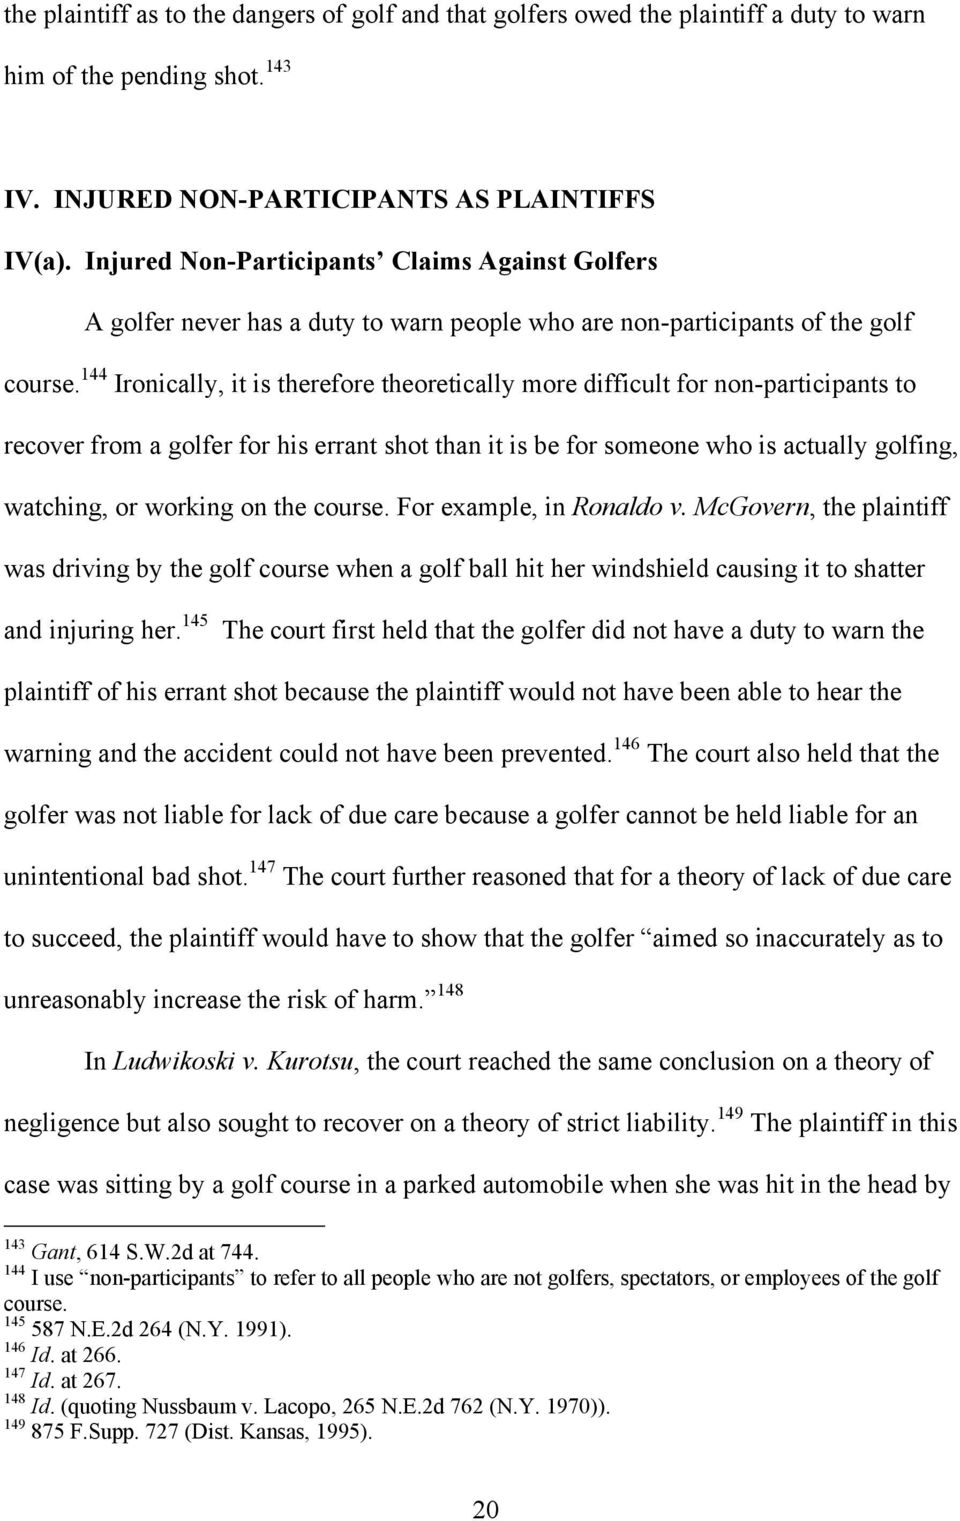 144 Ironically, it is therefore theoretically more difficult for non-participants to recover from a golfer for his errant shot than it is be for someone who is actually golfing, watching, or working